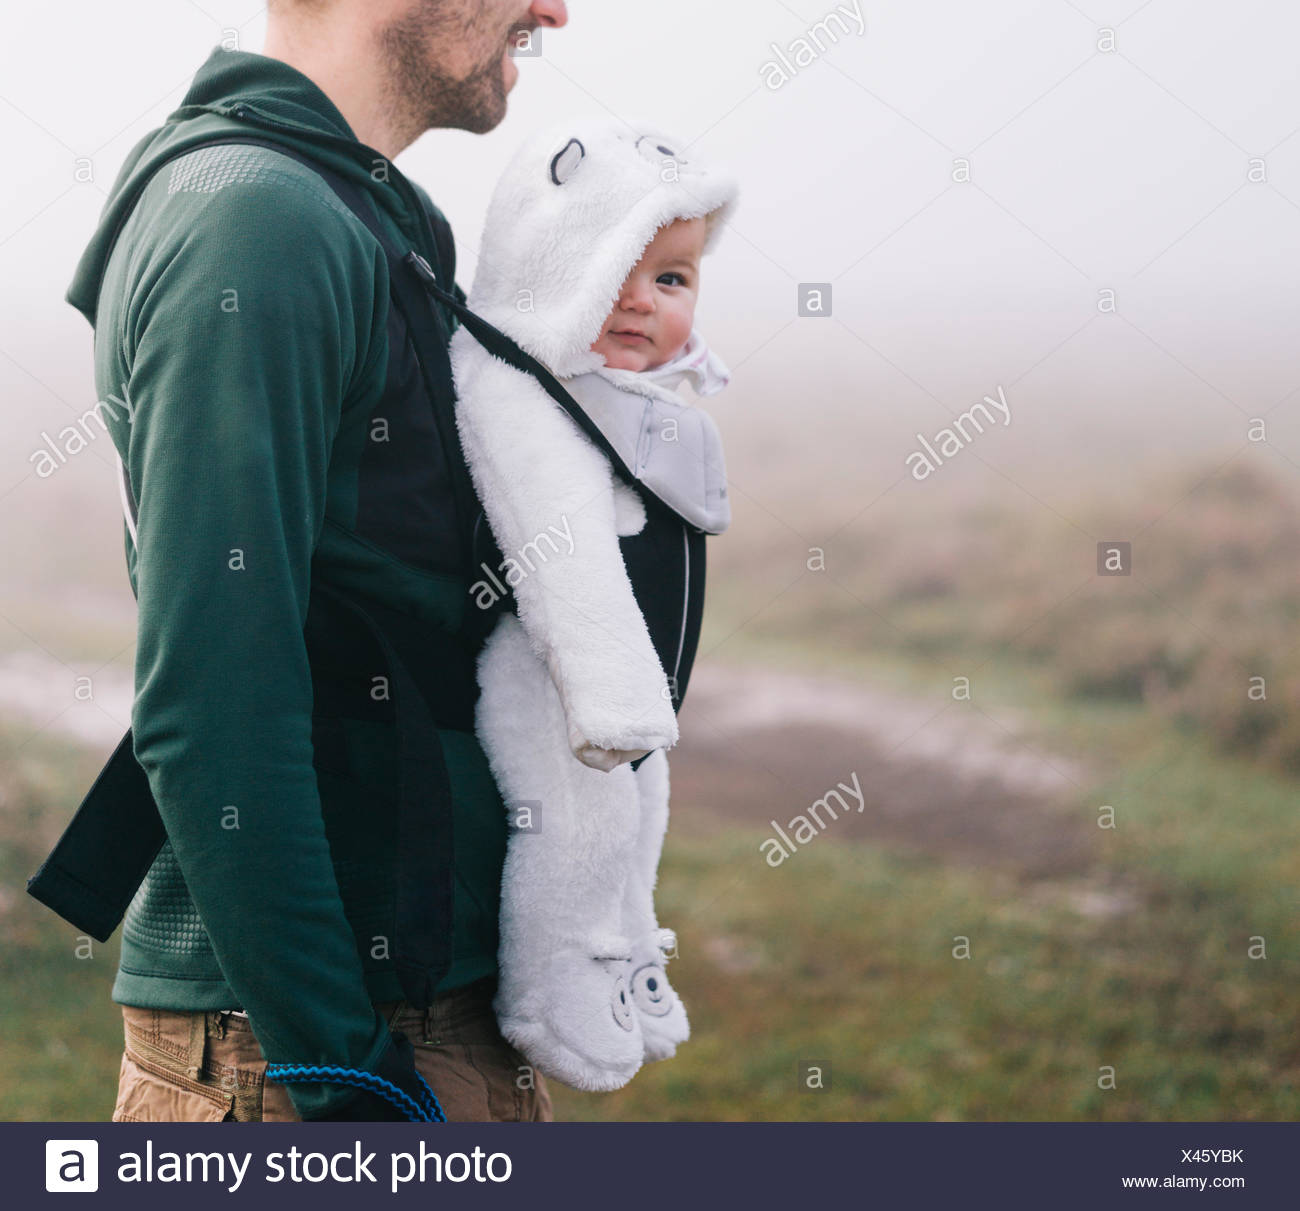 A man carrying a baby in a baby carrier on his chest, outdoors on a misty autumn day - Stock Image